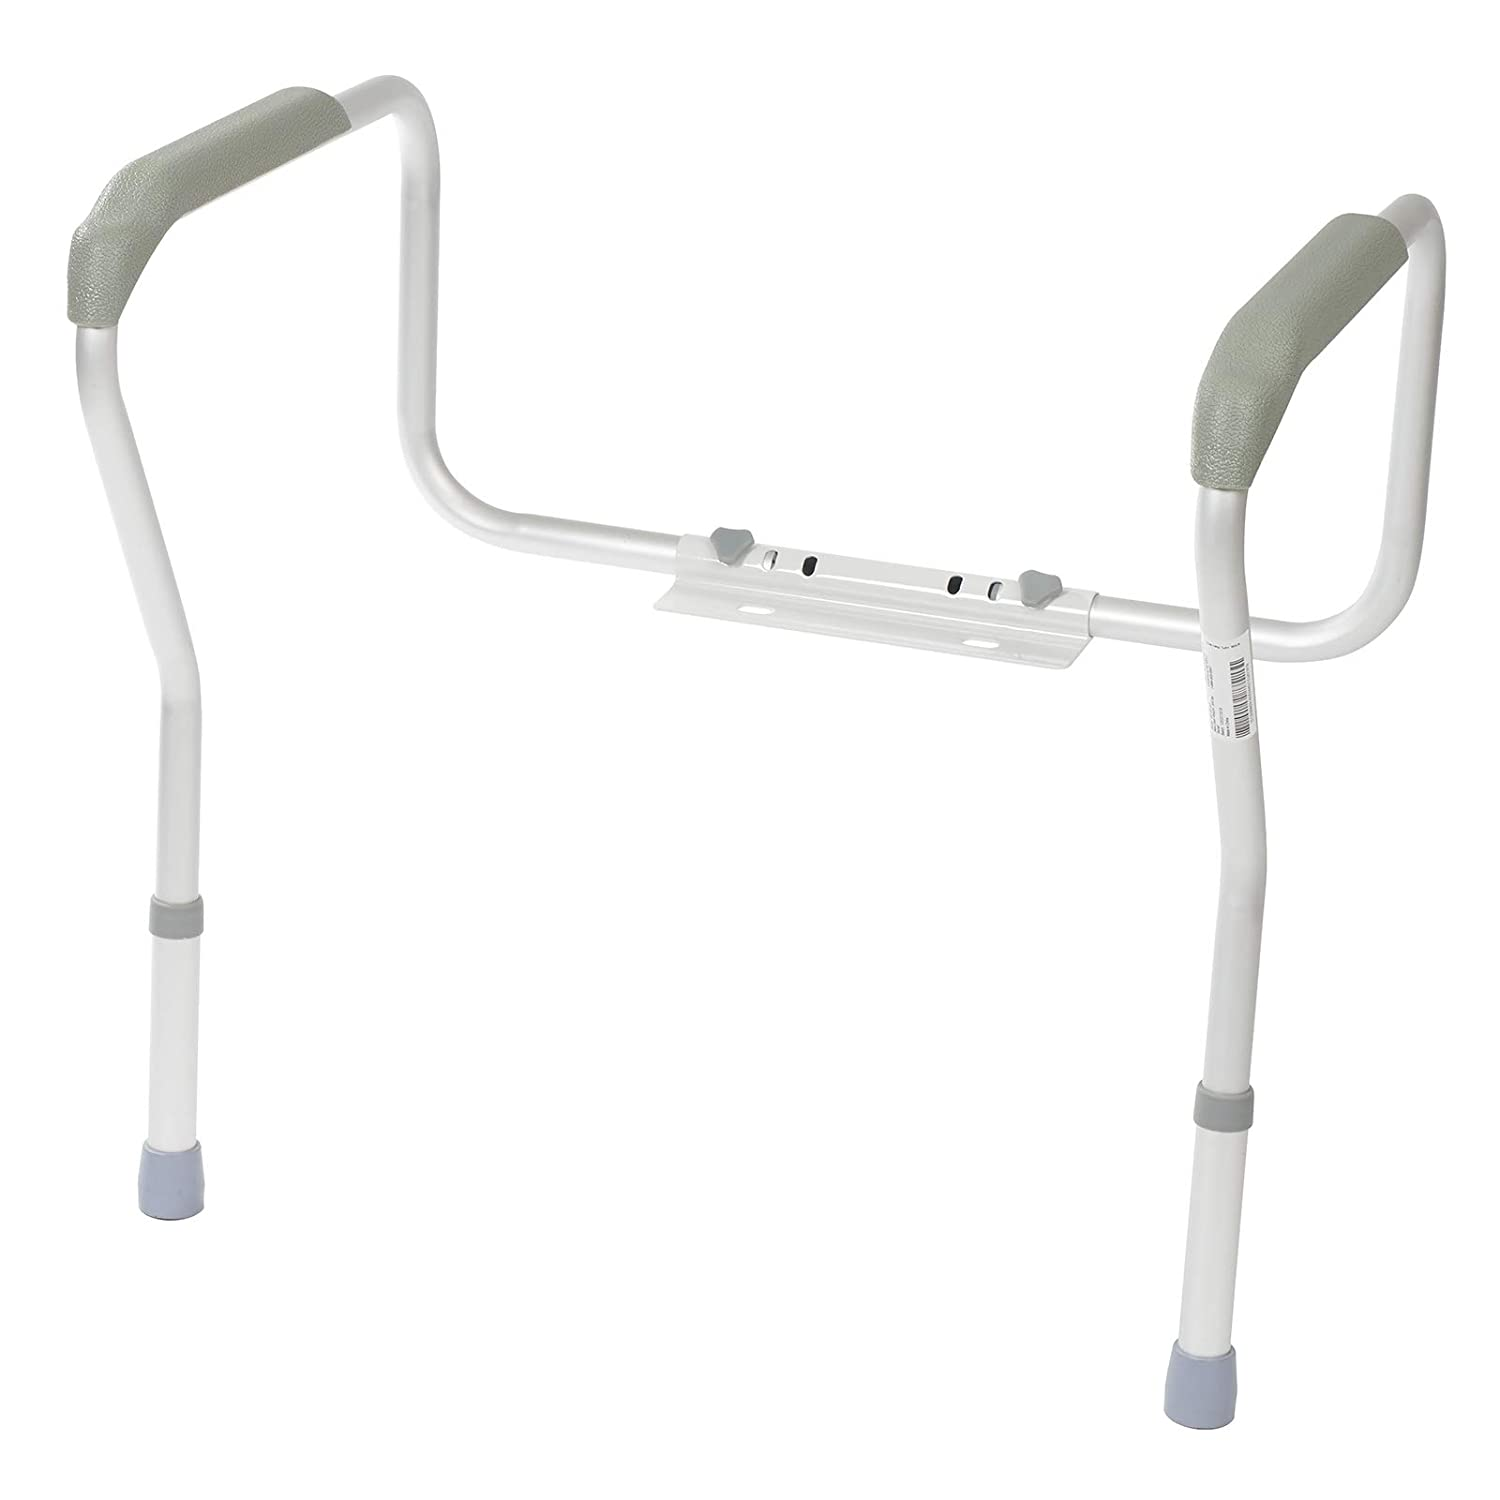 Homecraft Toilet Safety Frame, Bathroom Toilet Frame for Handicap or Disabled, Assistance Rails for Elderly, Adjustable Toilet Hand Rails for Support, Safety, and Comfort, Bathroom Grab Bar